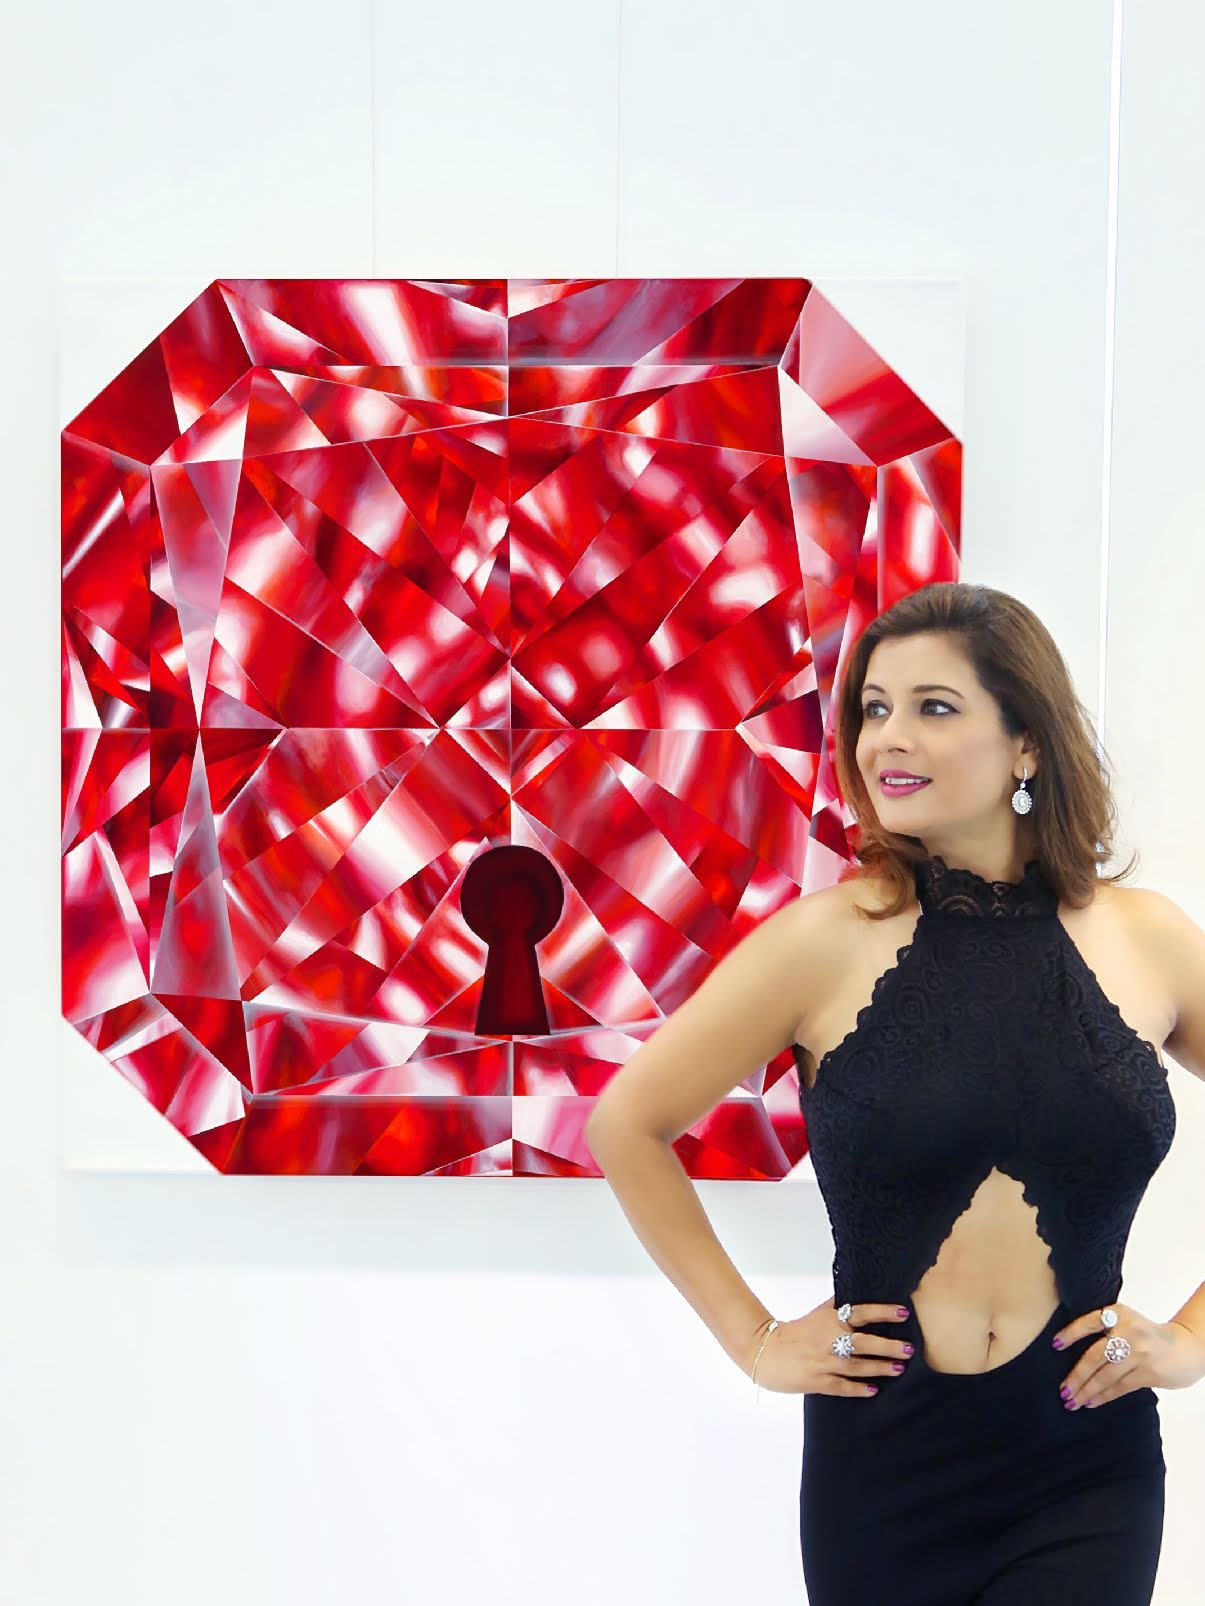 Artist Reena Ahluwalia with her Red Diamond Painting, titled 'Unlock'. See Reena's paintings    here   .